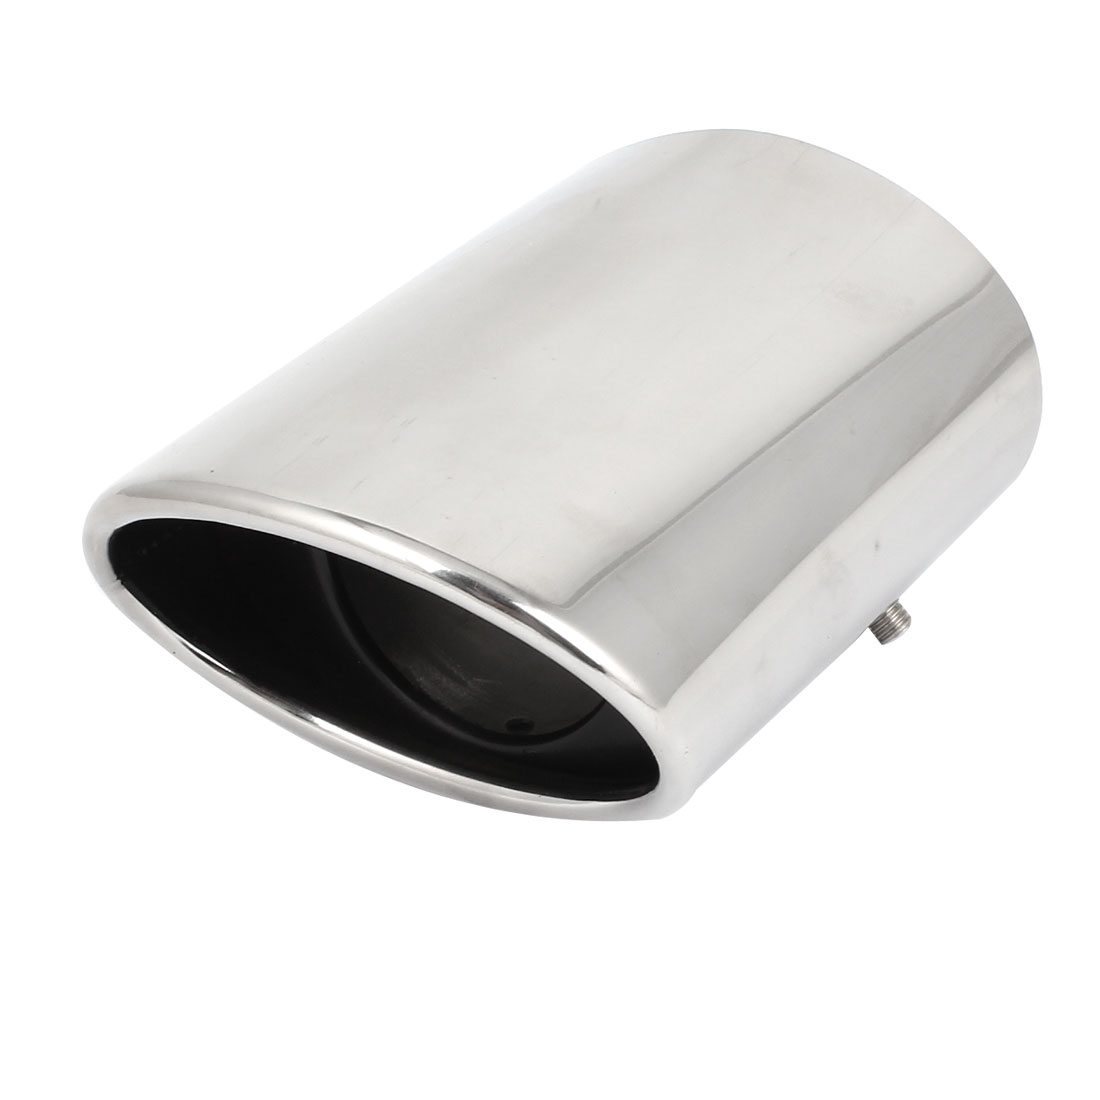 14cm Long Stainless Steel Exhaust Muffler Pipe Silver Tone for Honda Civic